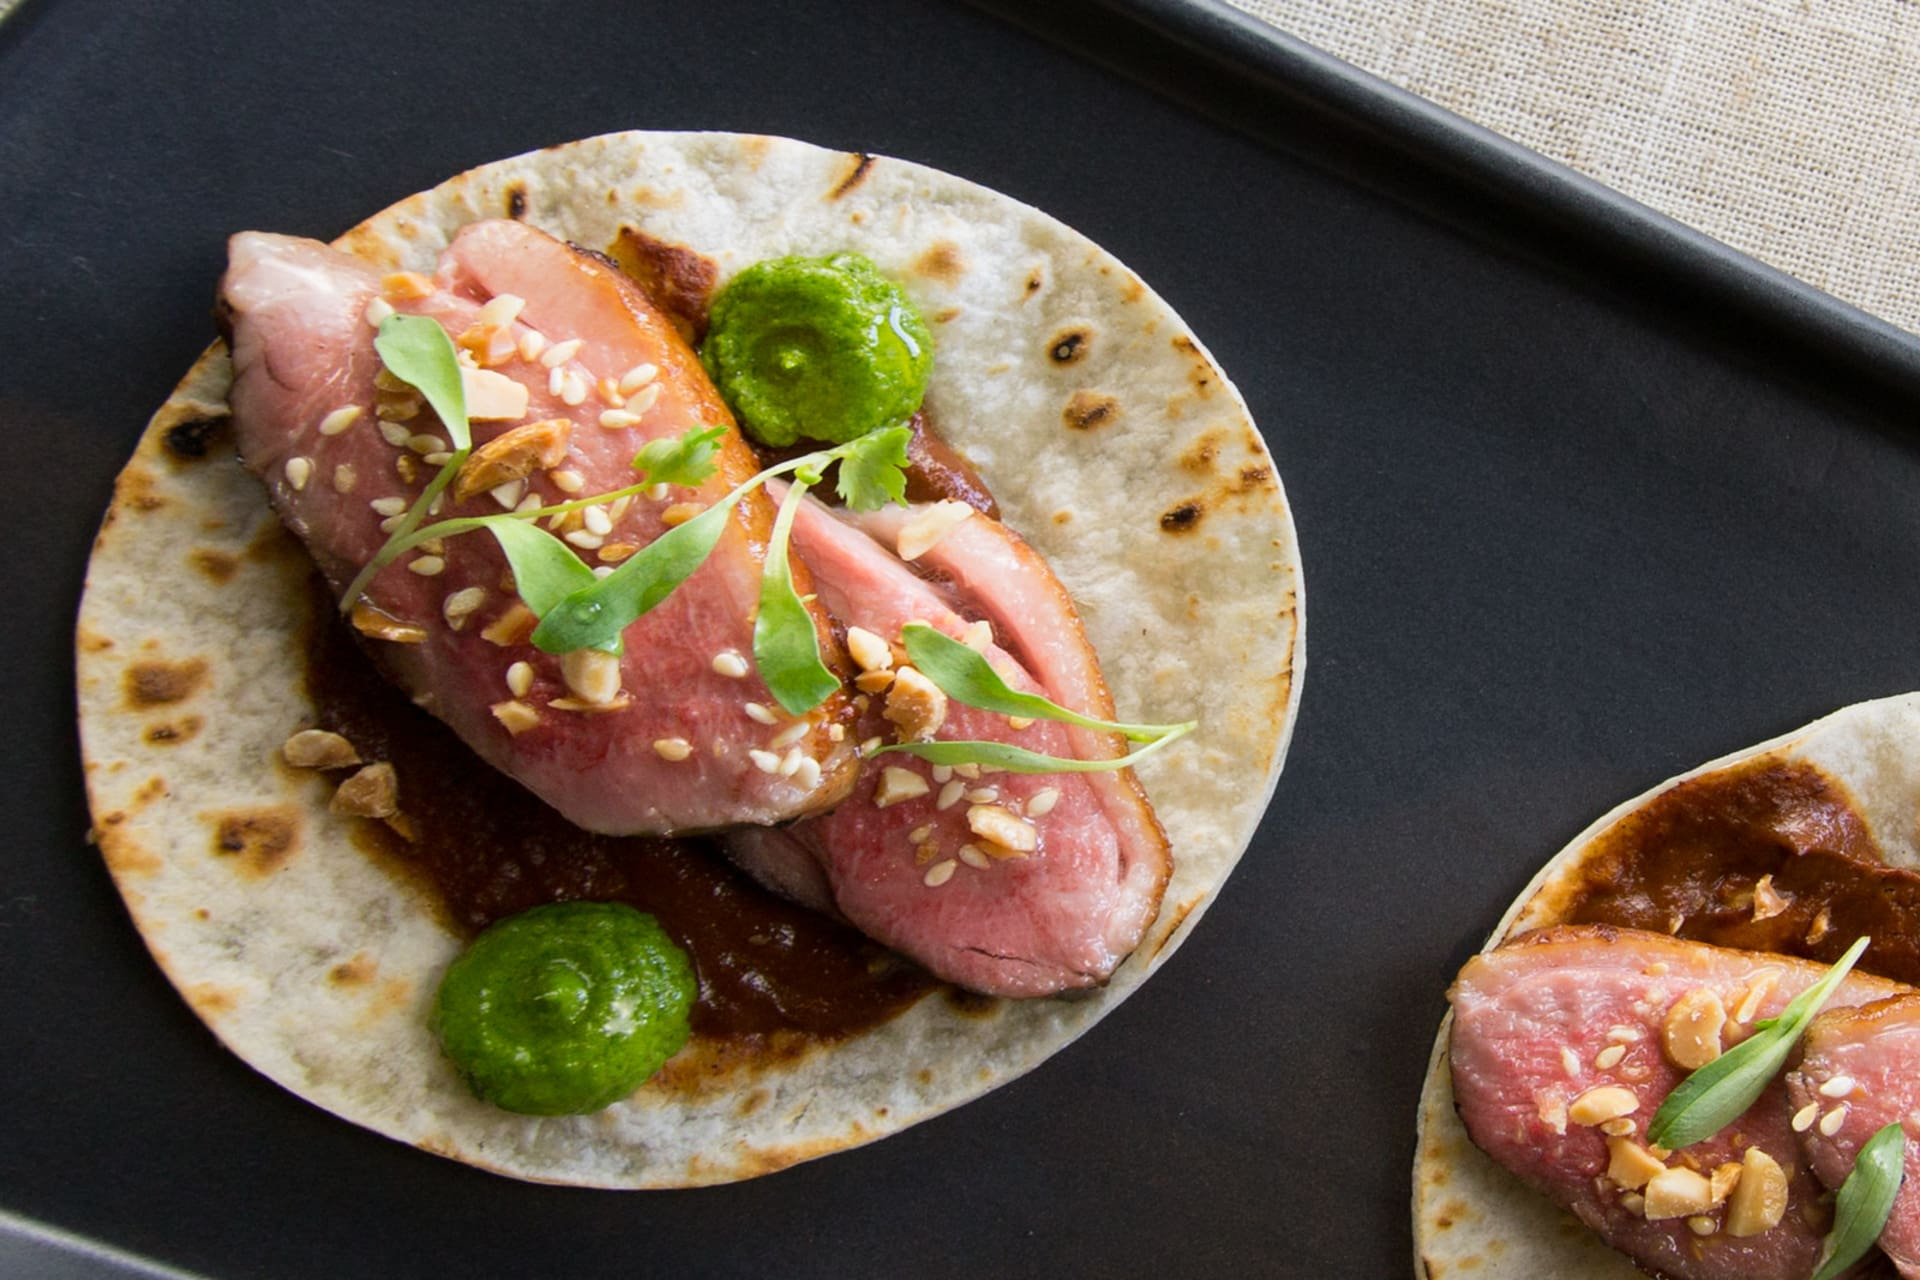 DUCK BREAST TACO